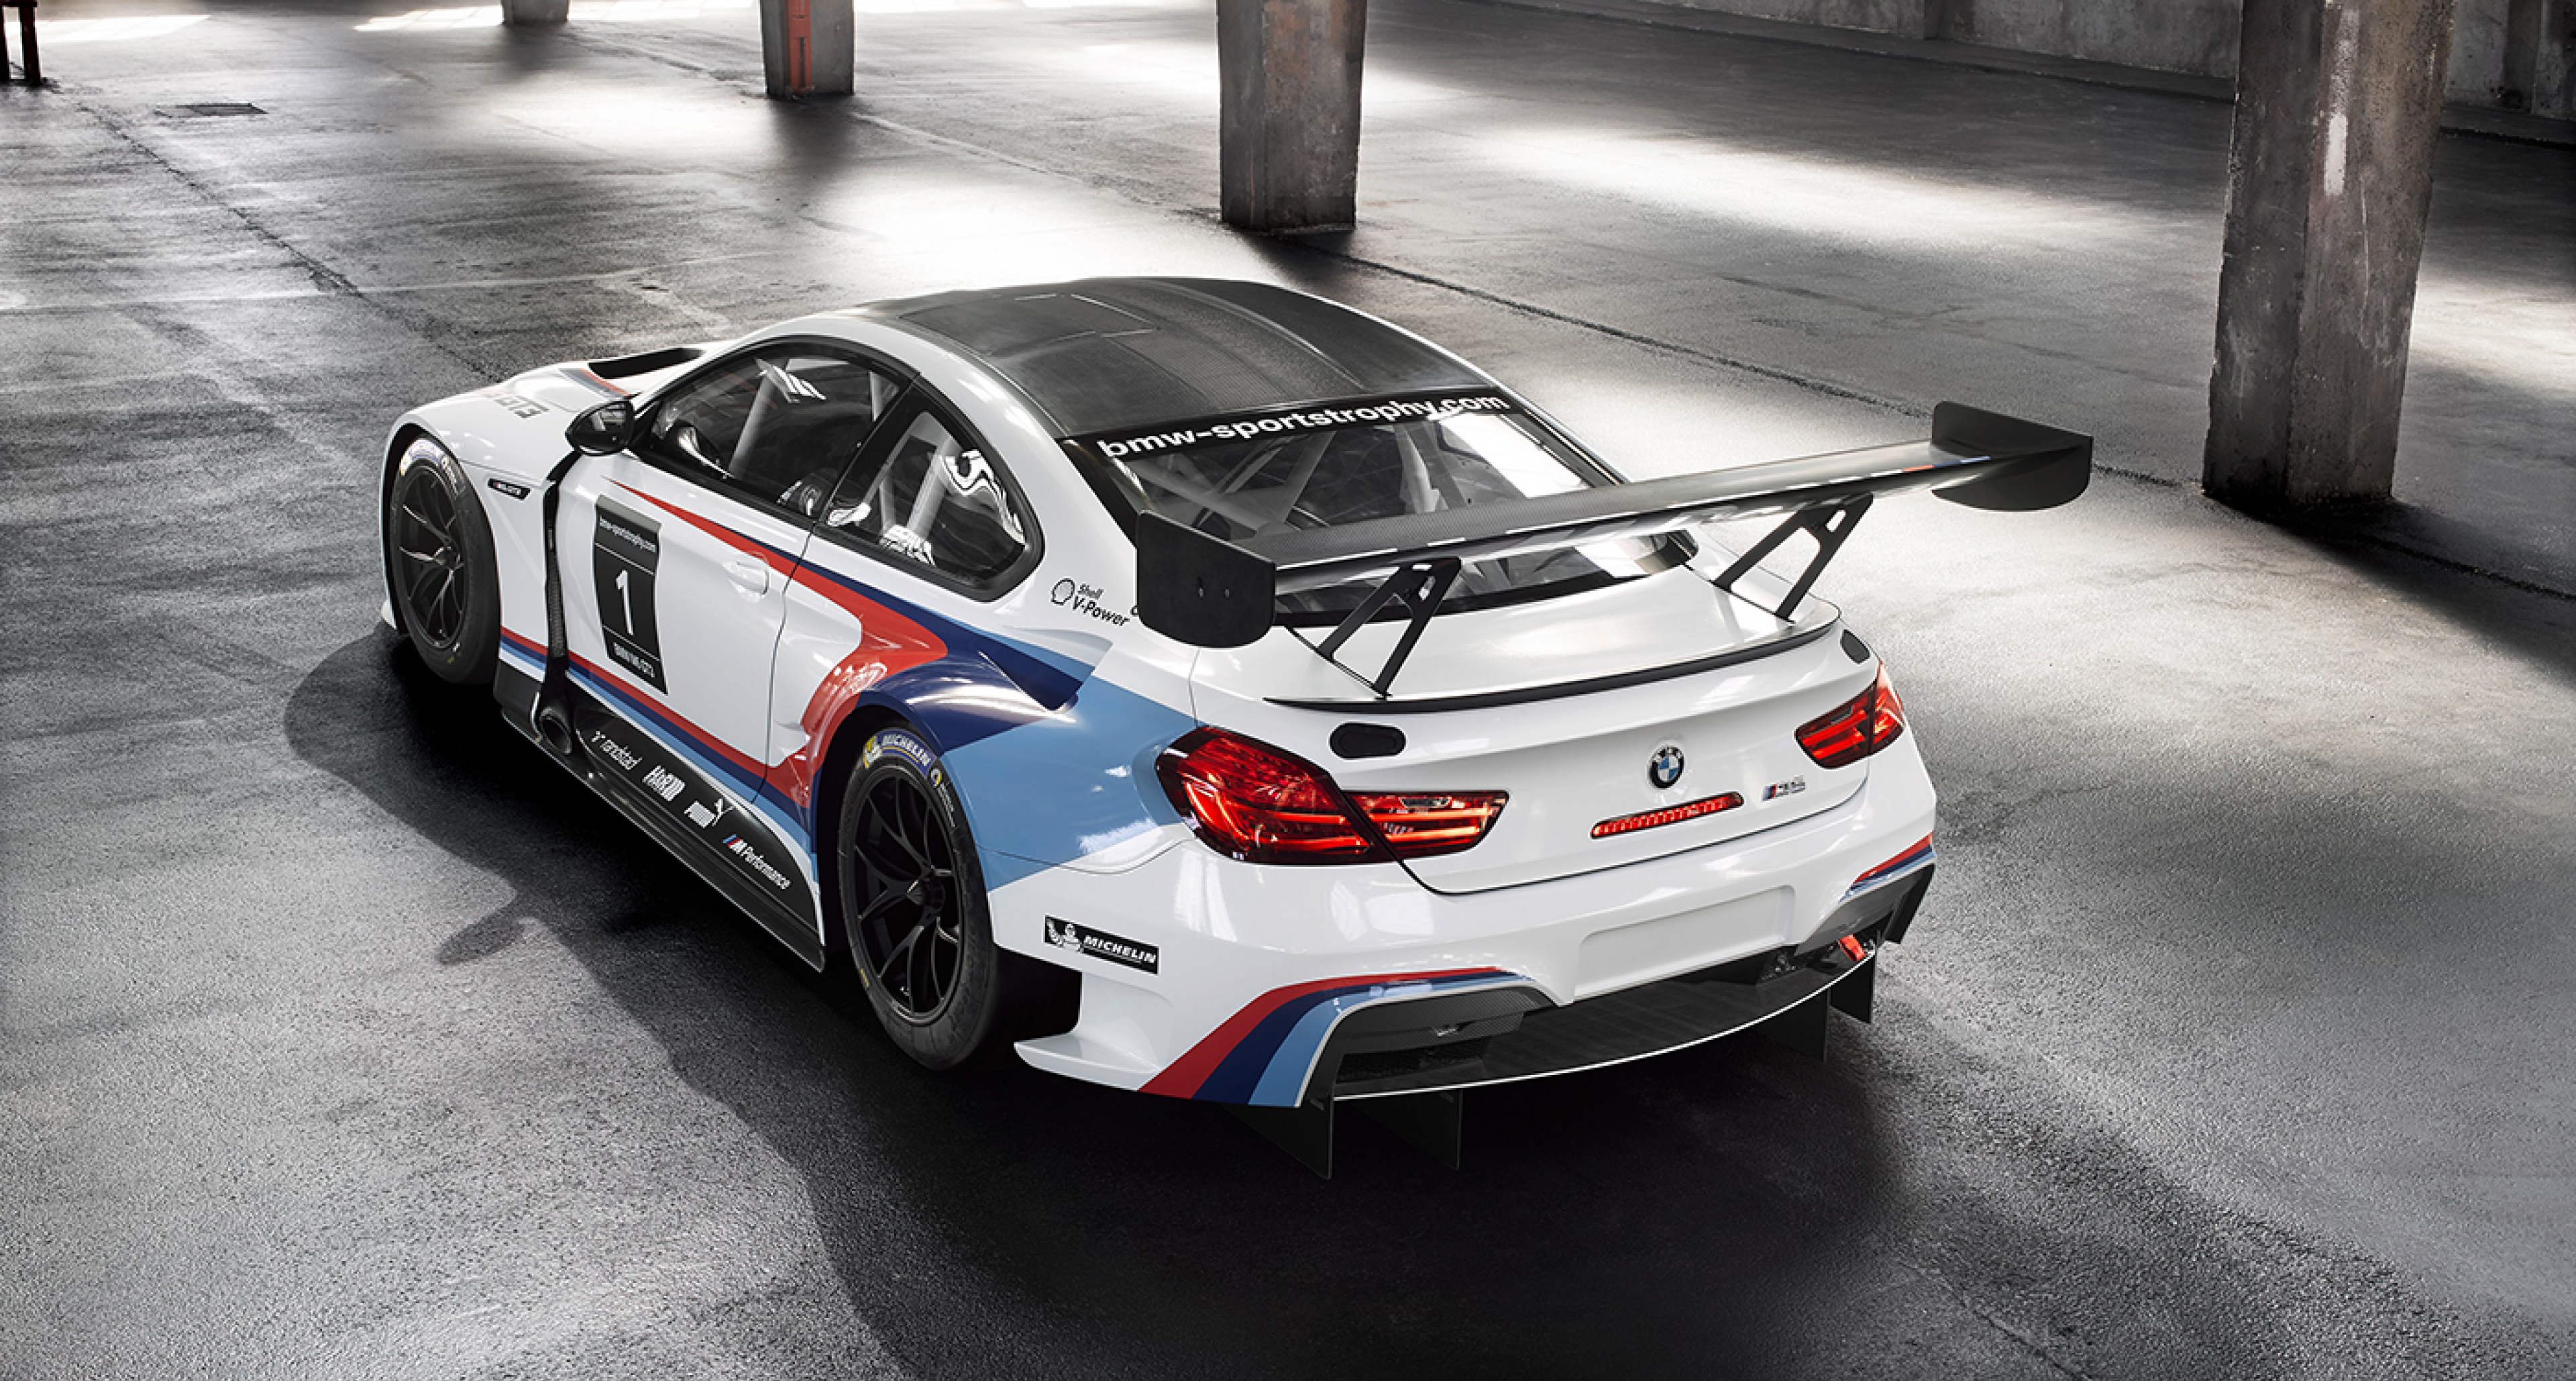 How Might The New BMW M6 GT3 Art Cars Look